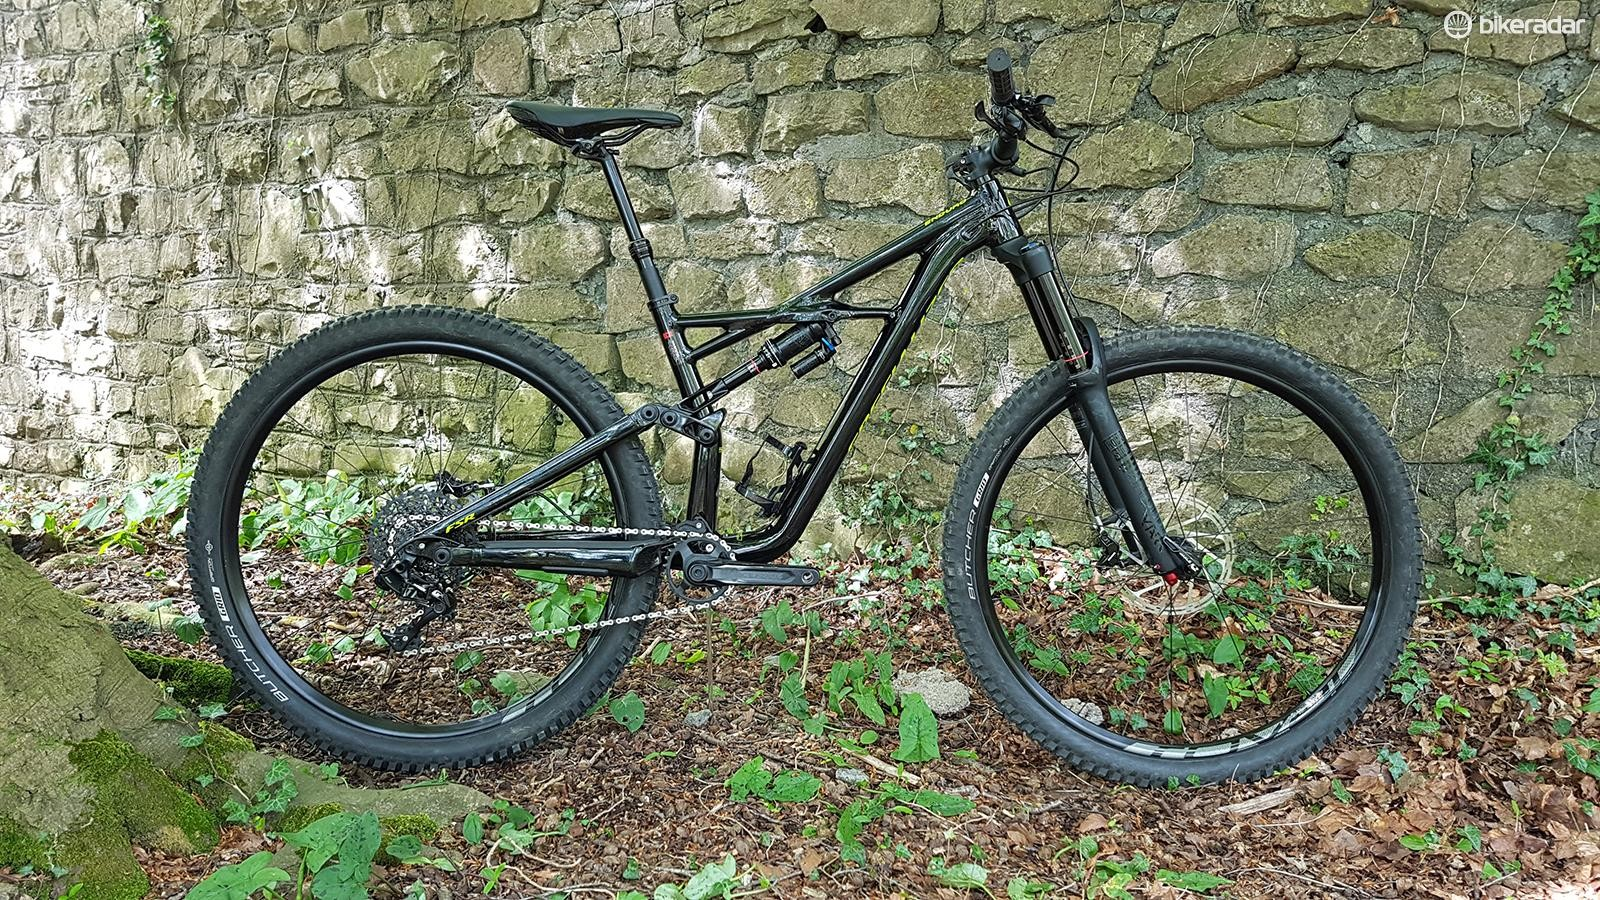 The revamped Specialized Enduro